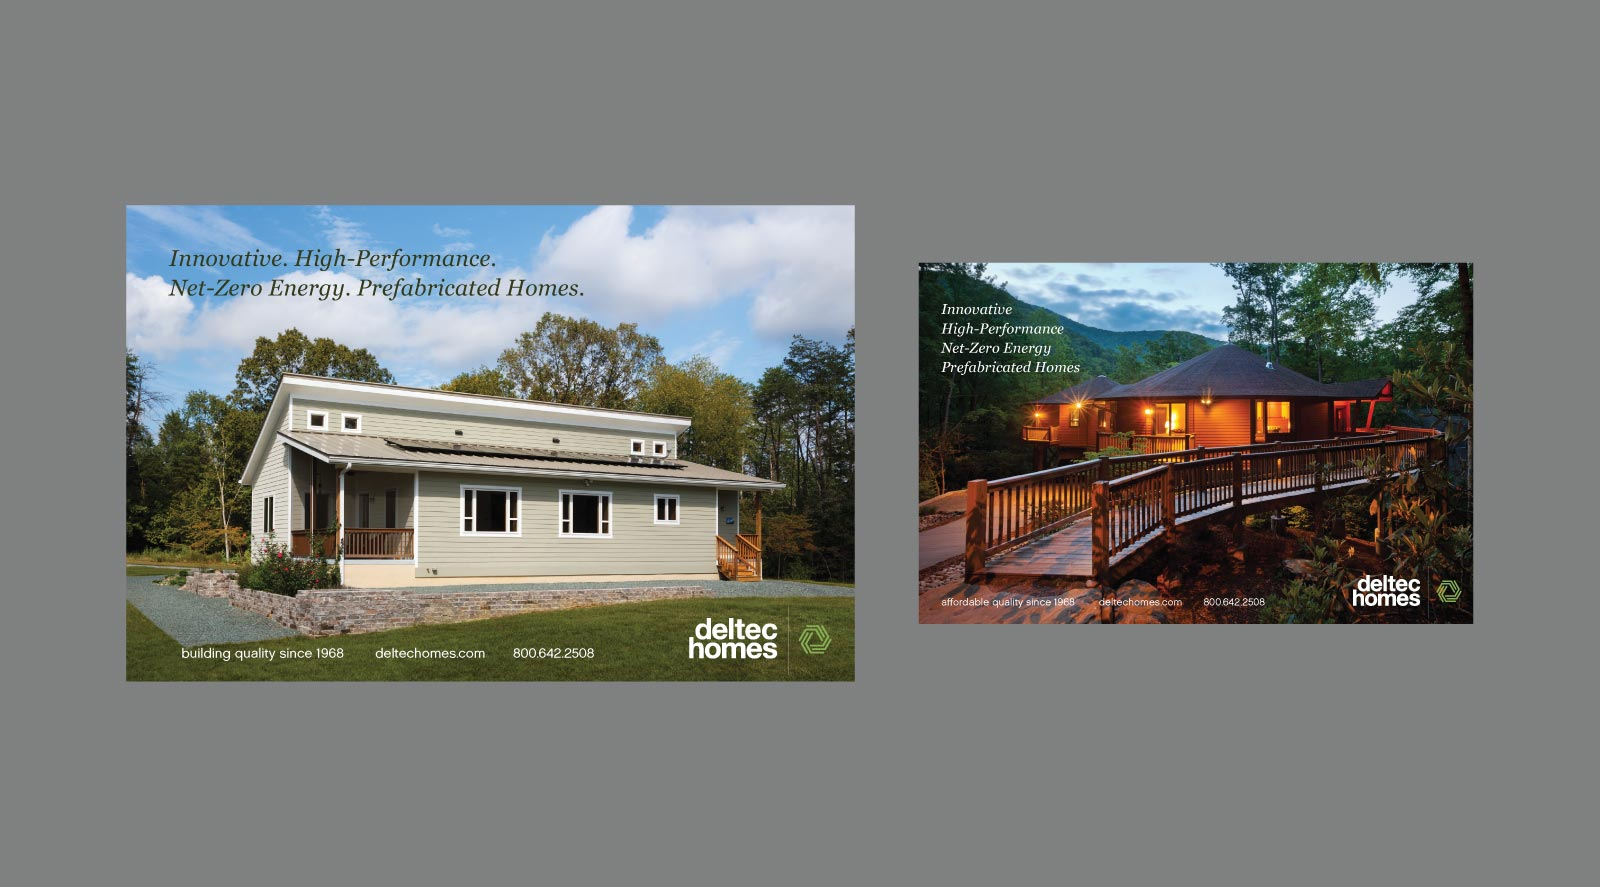 Deltec Homes print Advertisements shown on gray background